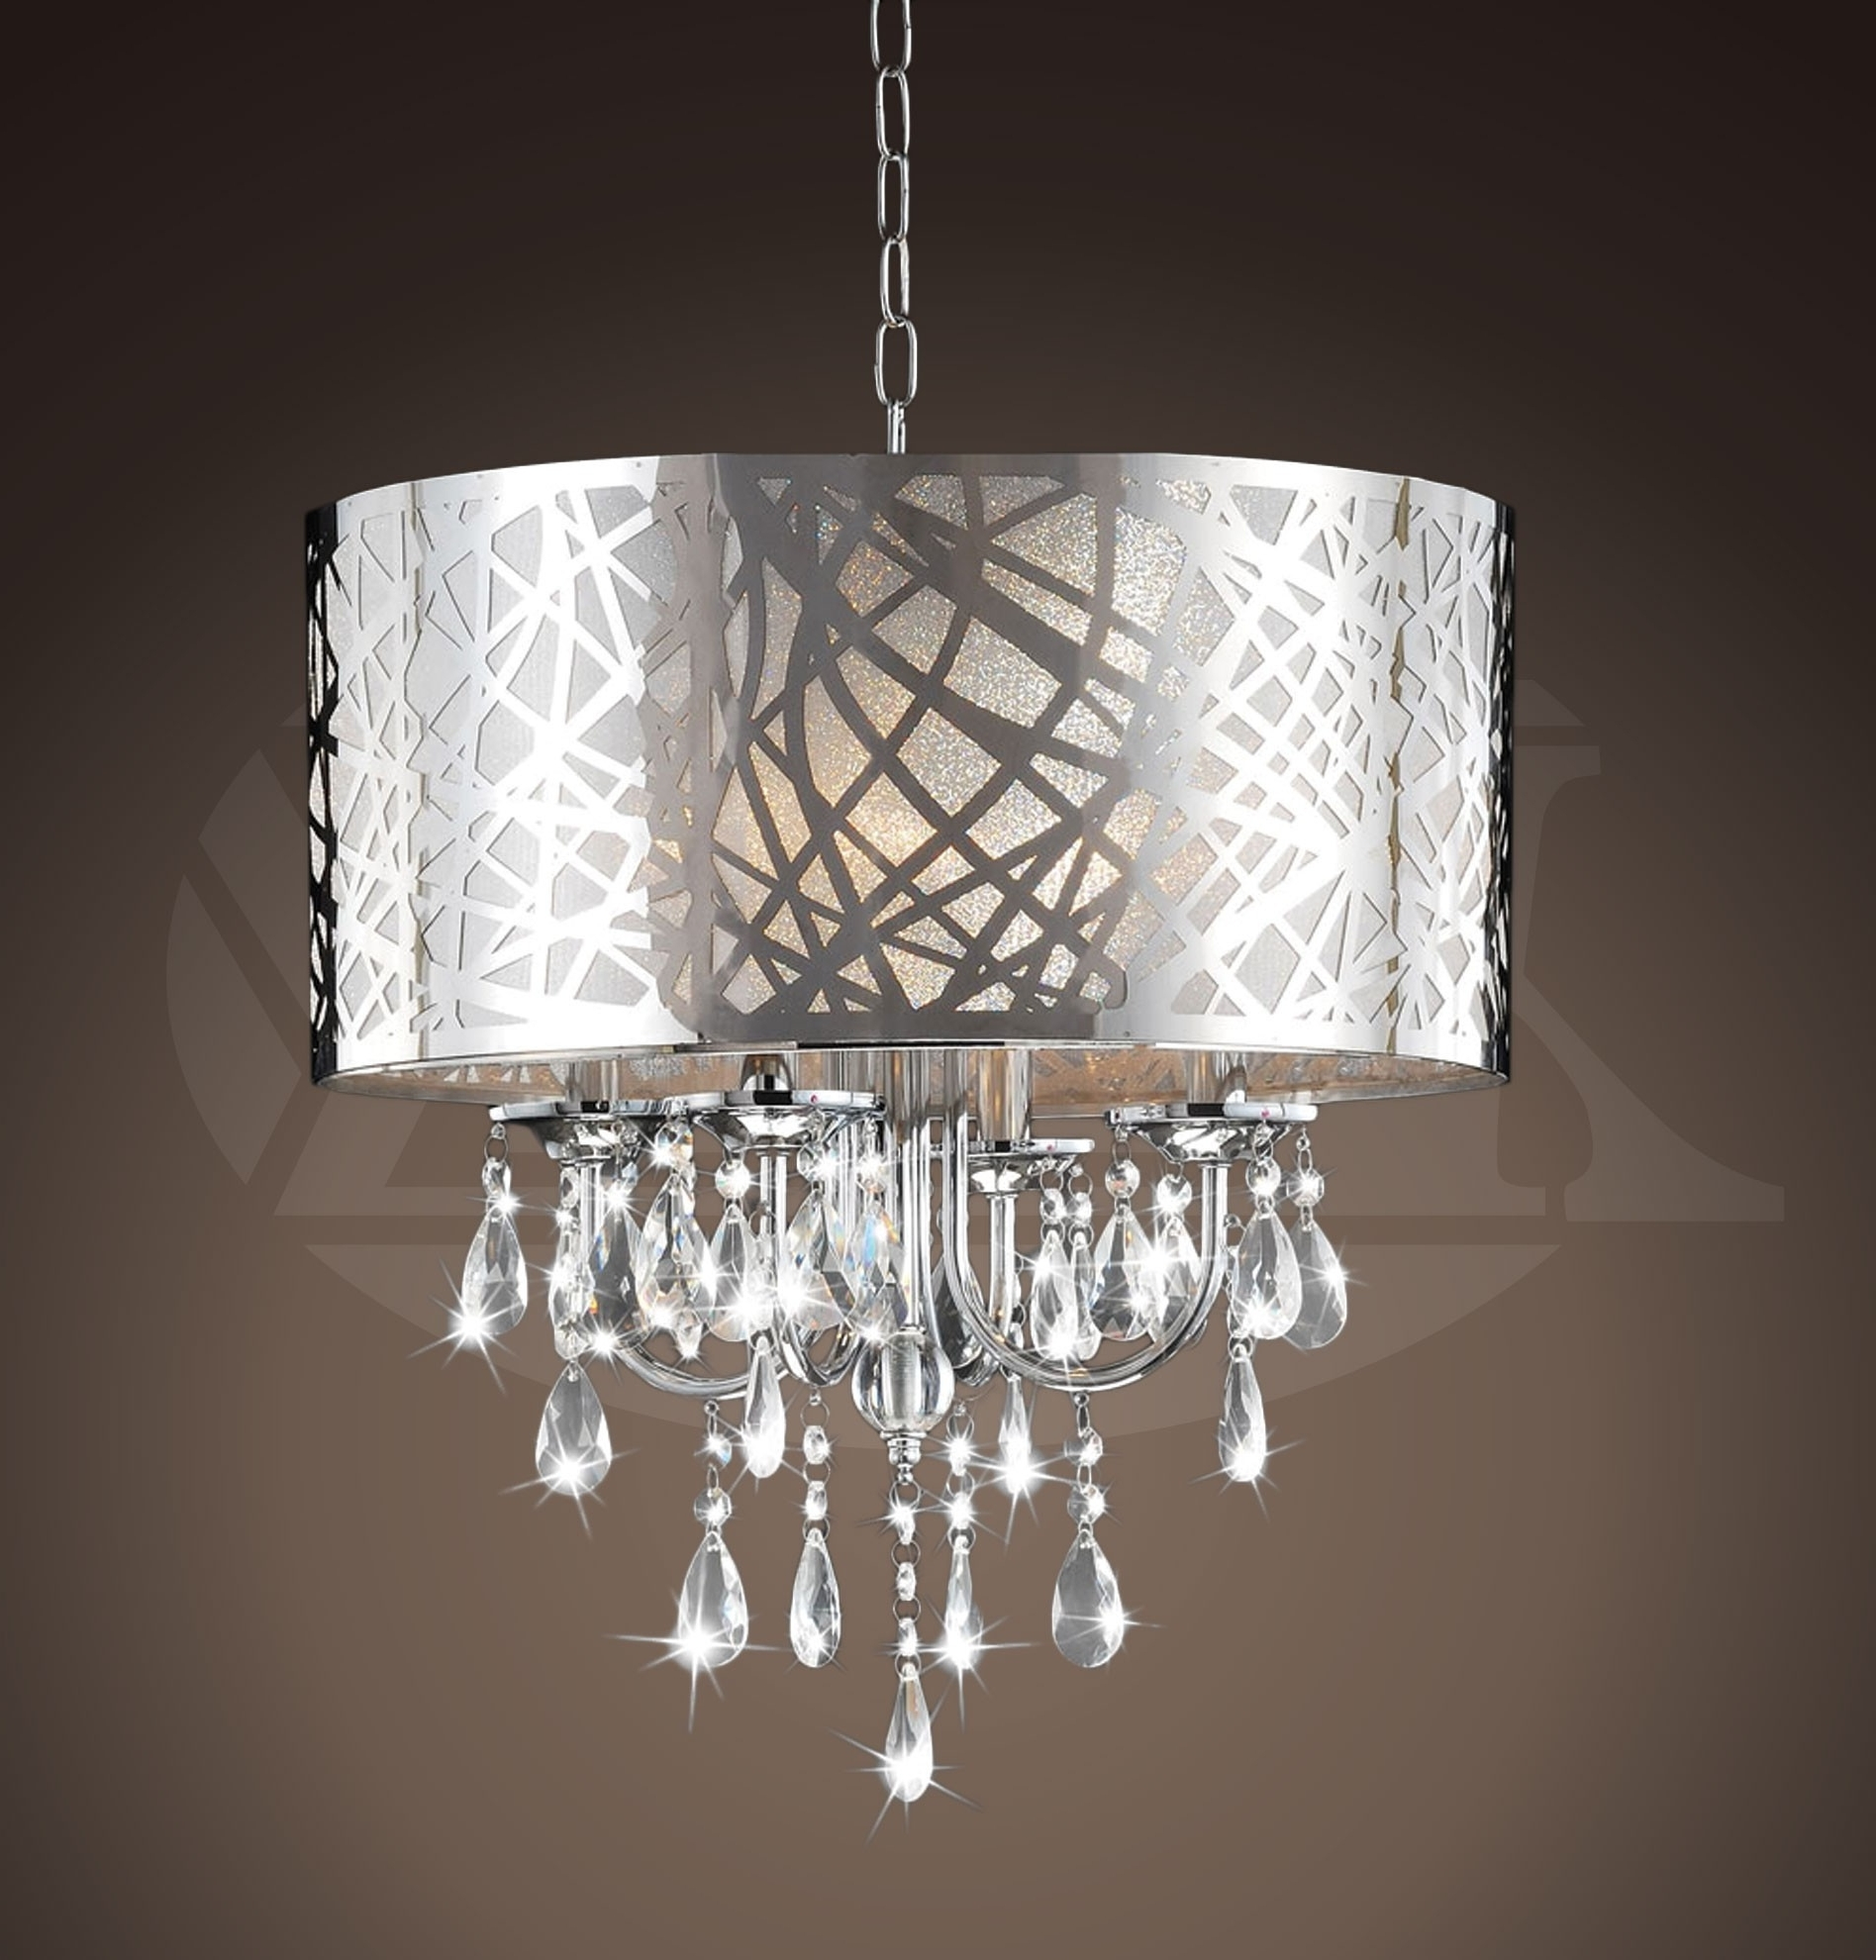 Beautiful Chandelier Intended For Most Recently Released Chandeliers : Modern Crystal Chandelier Beautiful Chandelier (View 3 of 15)